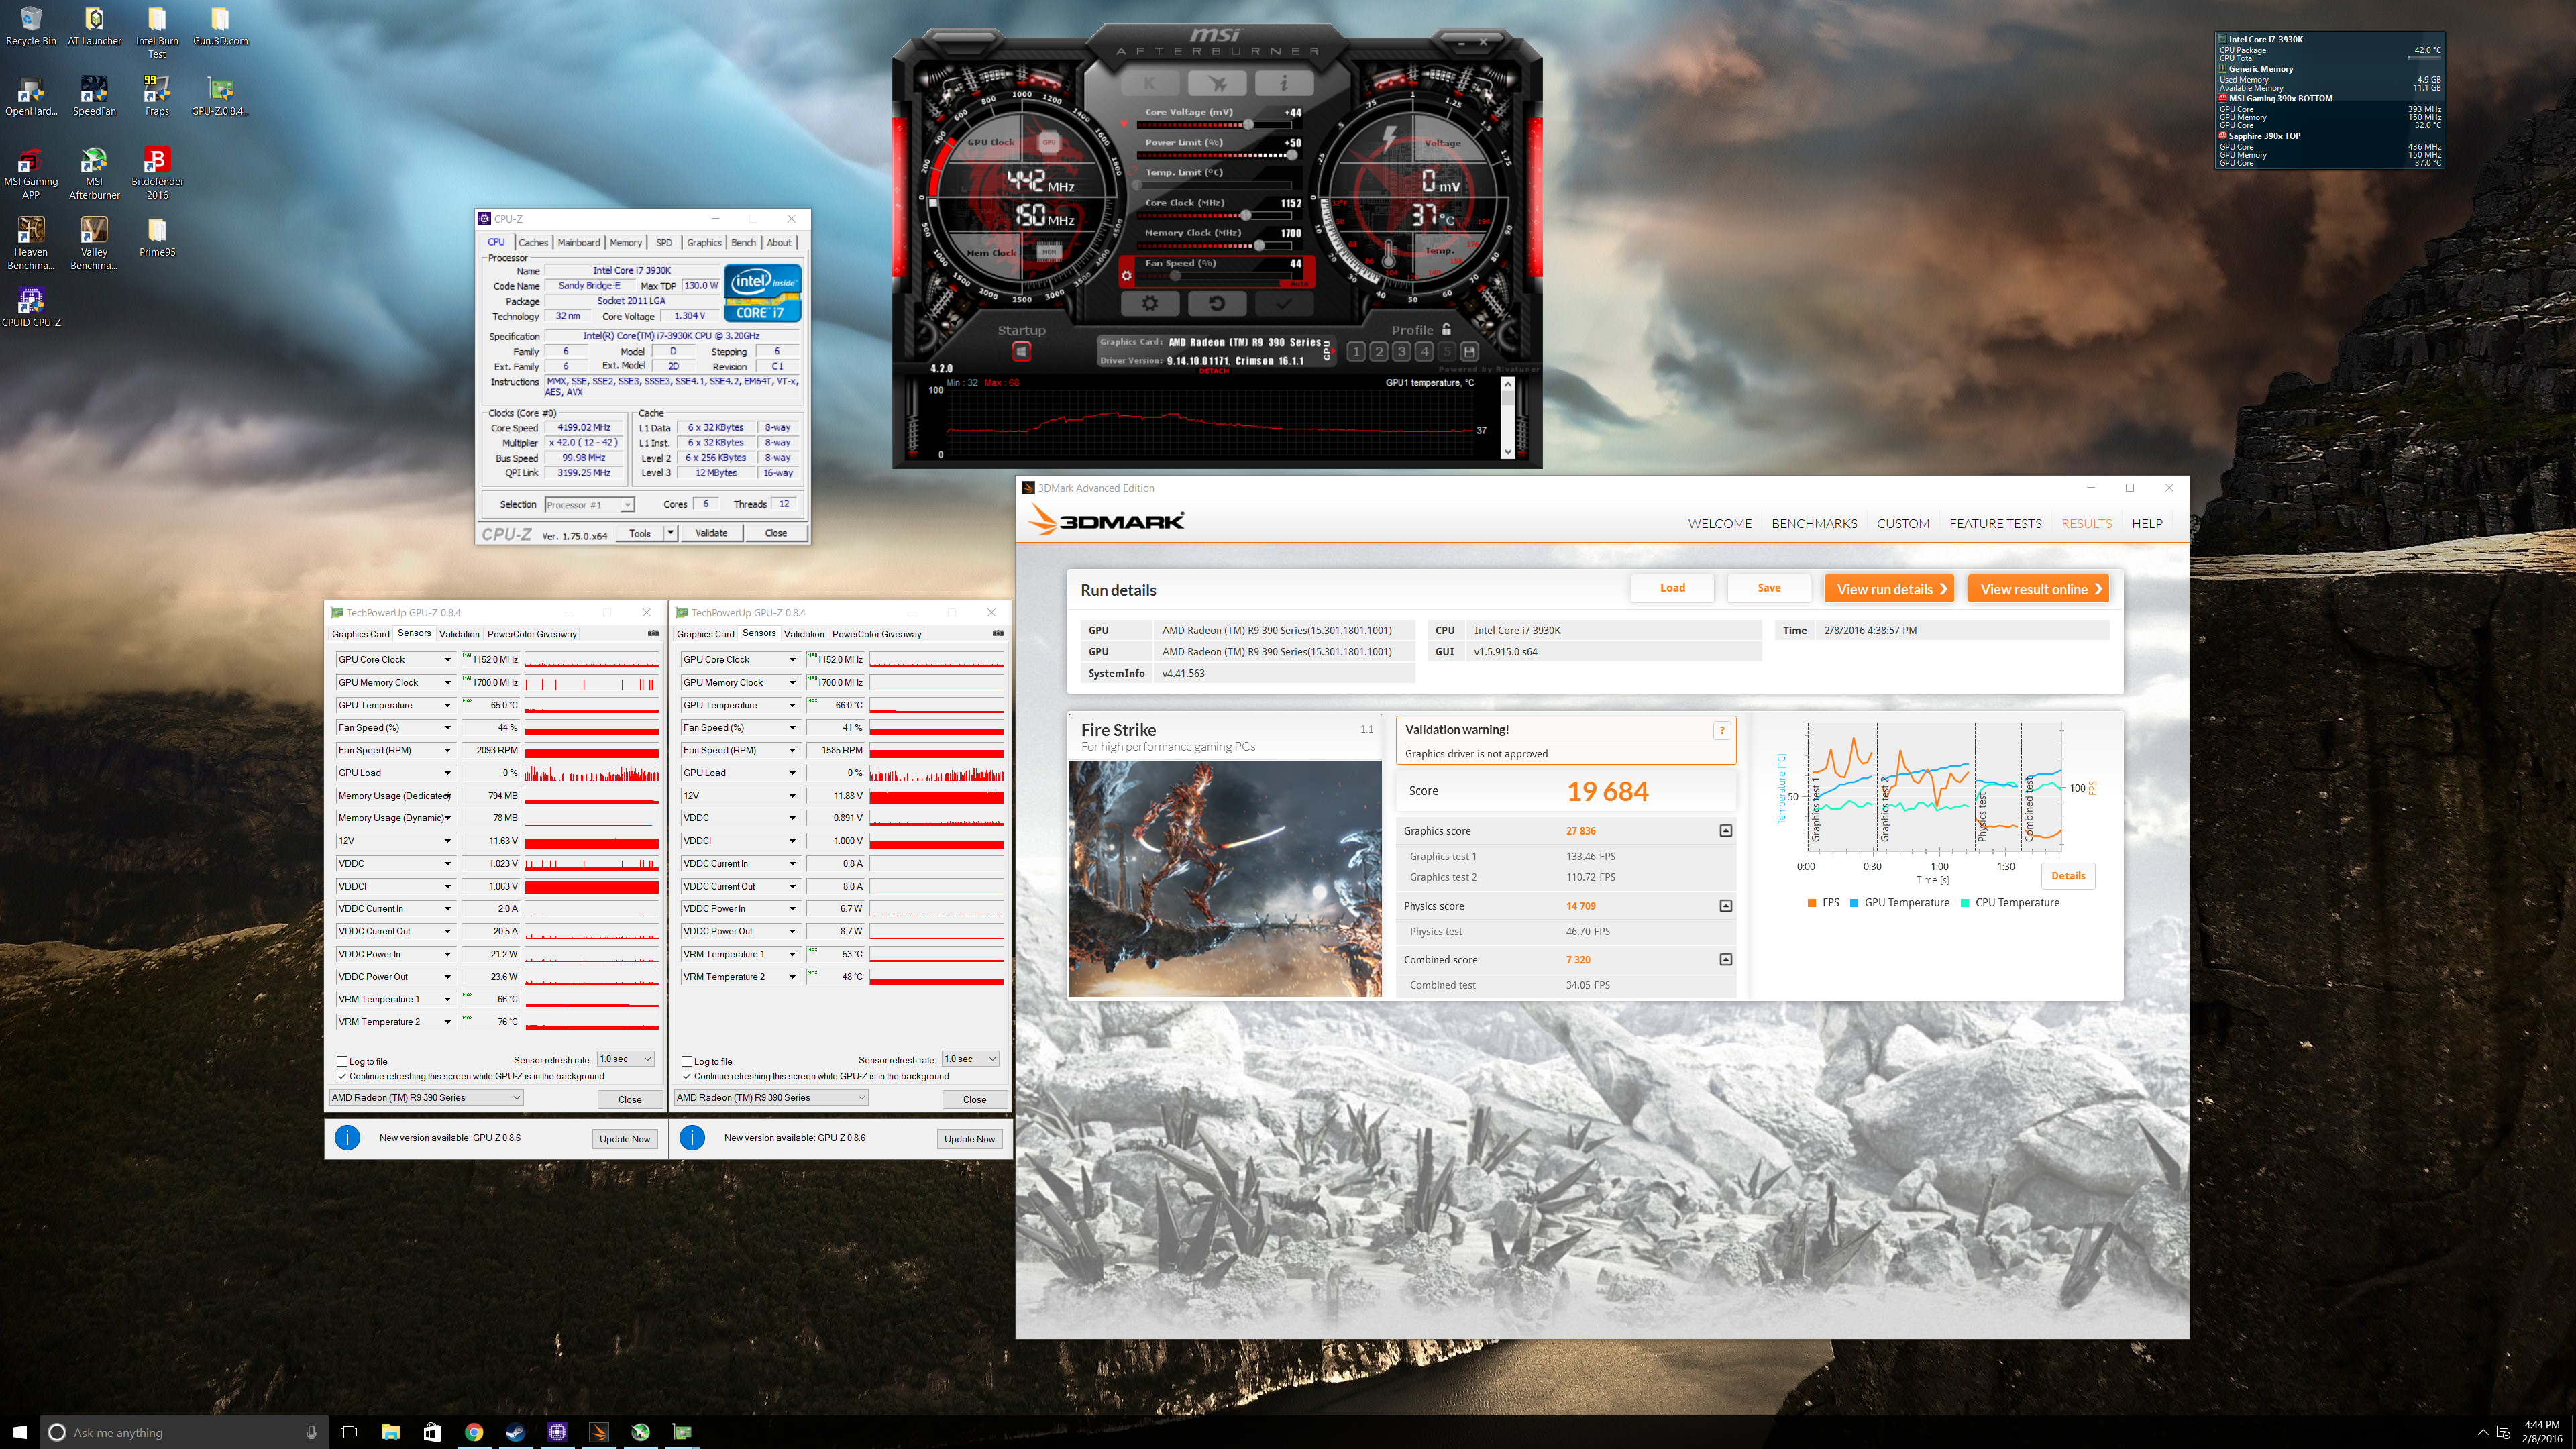 3930k at 4.2Ghz and 1.3 Vcore